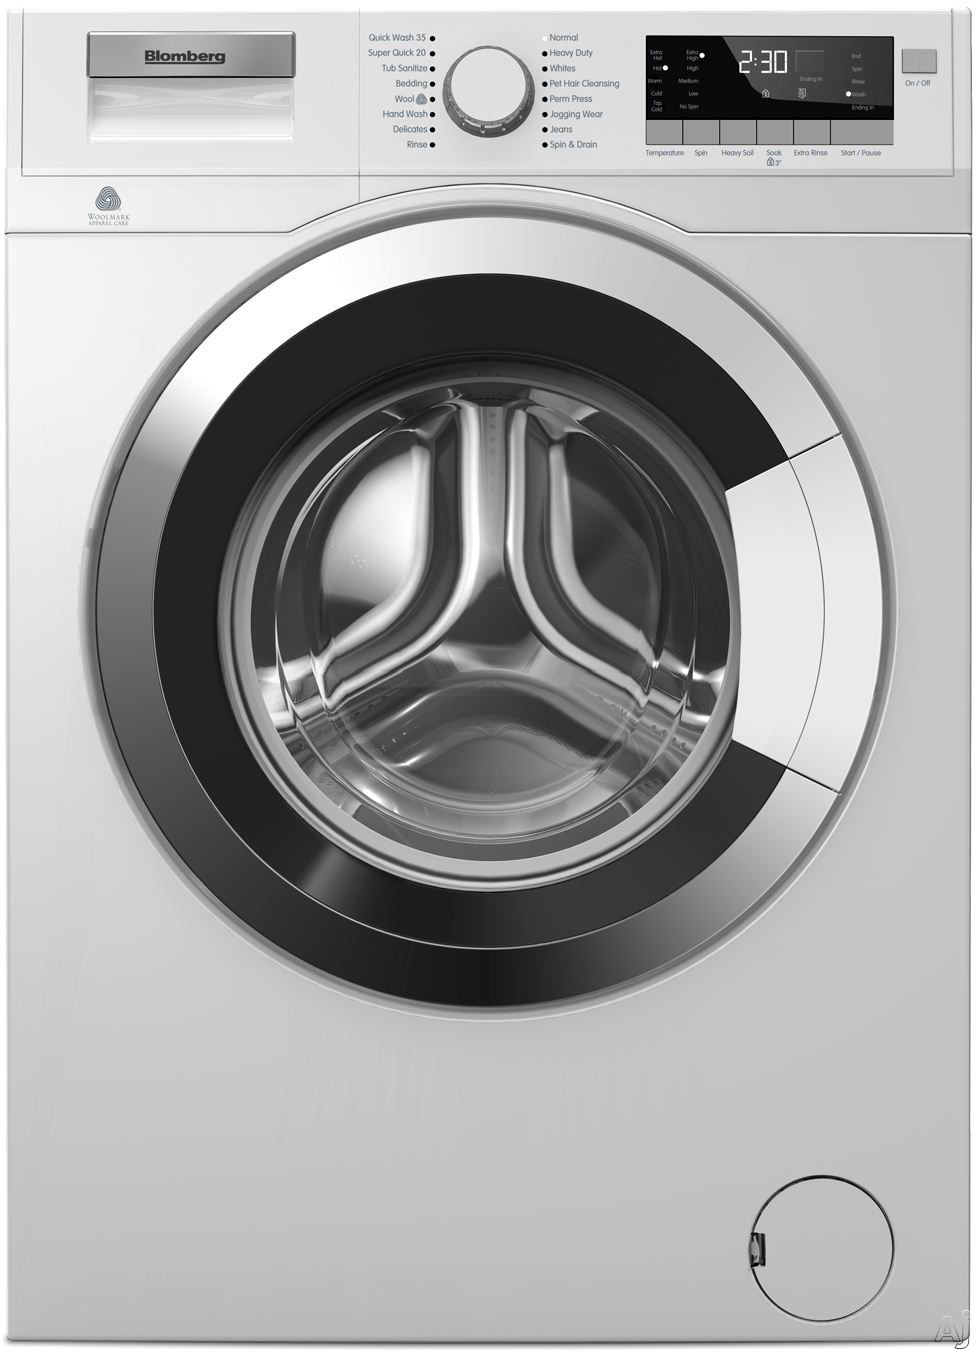 2.5 cu. ft. Front Load Washer WM98400SX